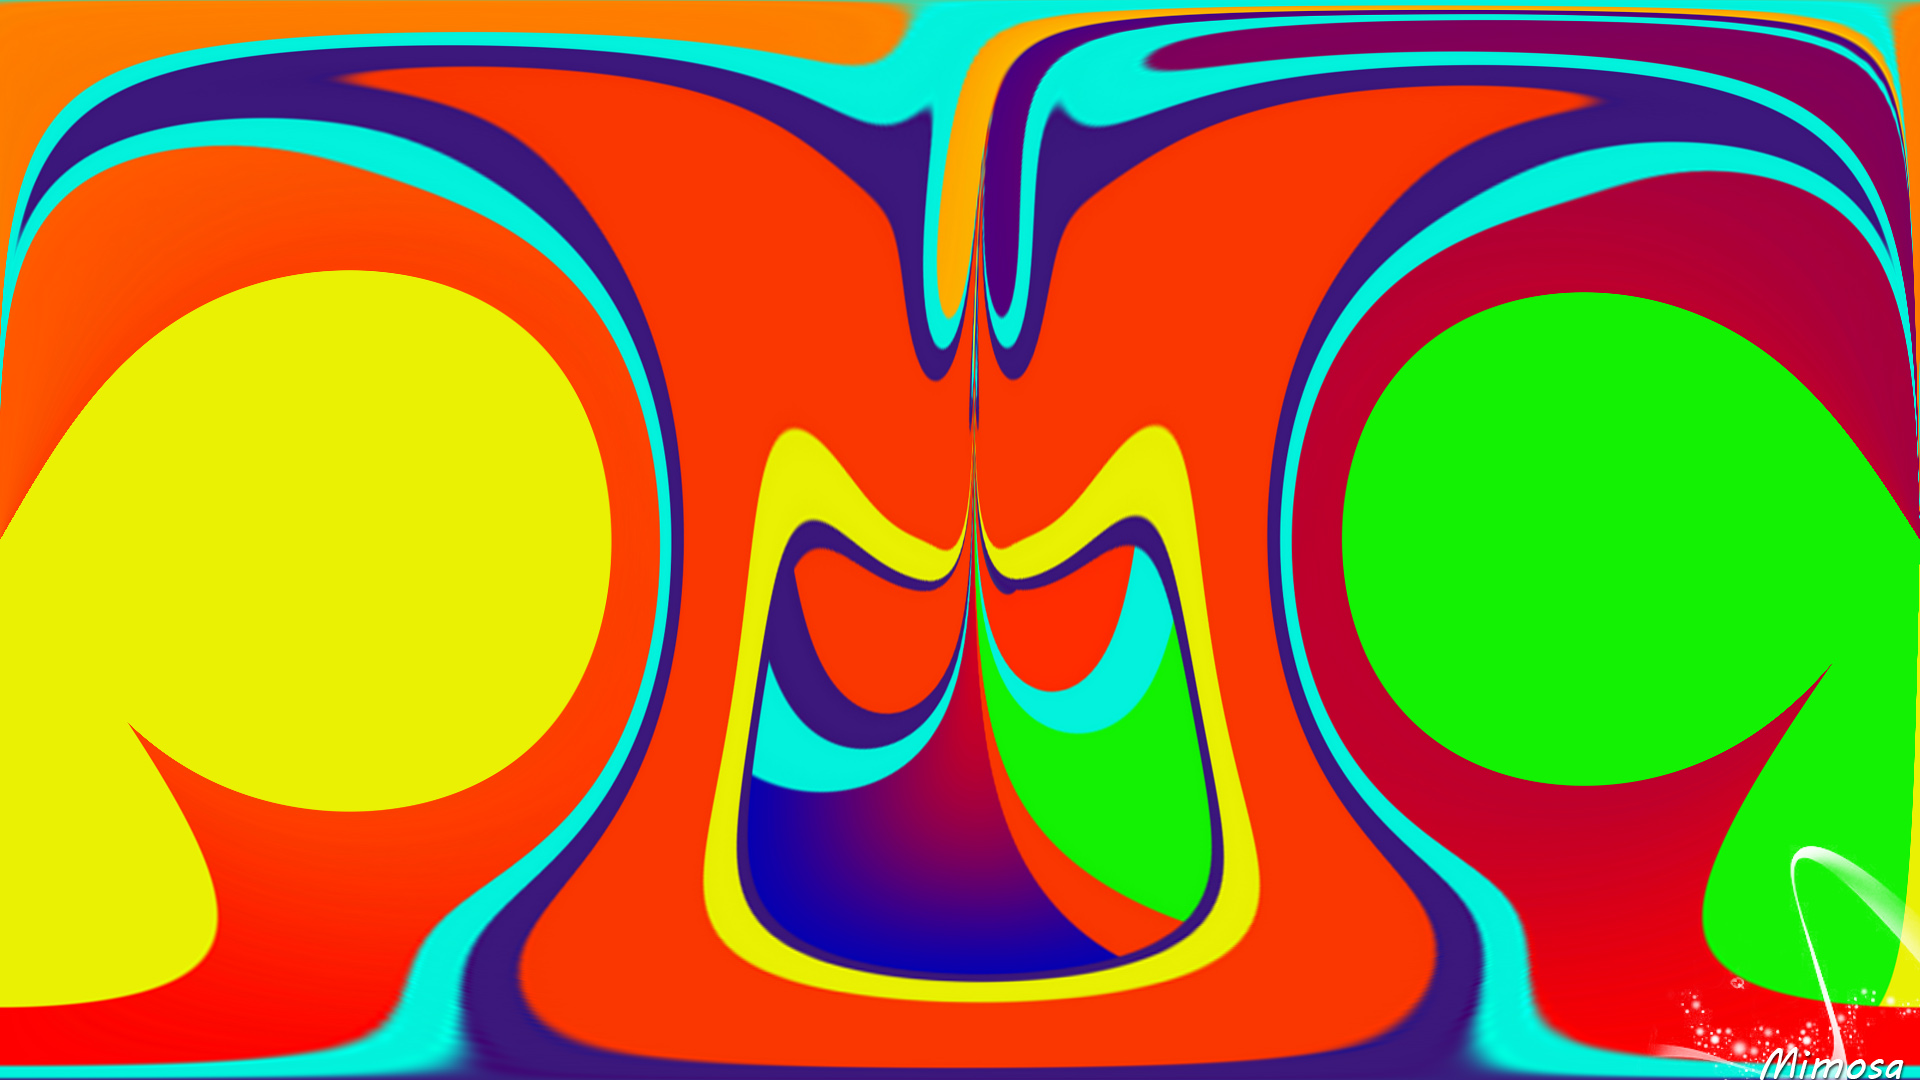 Abstract Artistic Colorful Digital Art Orange Color 1920x1080